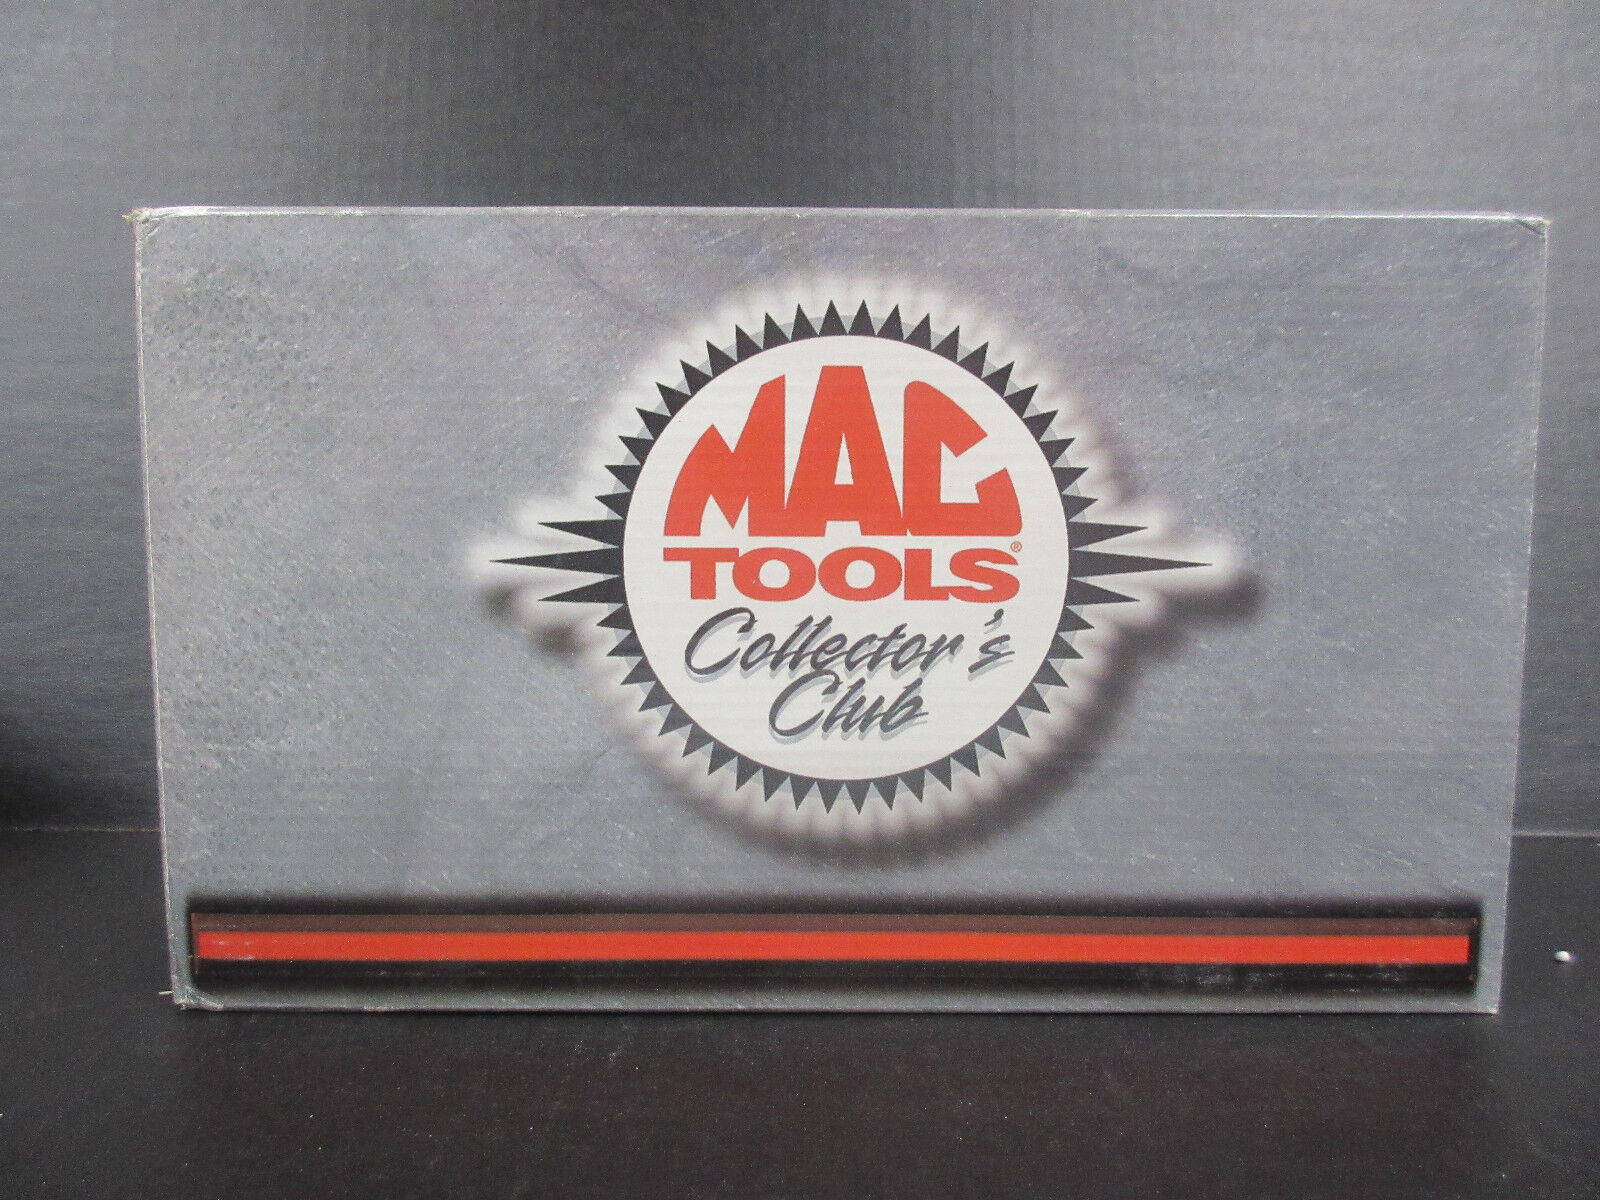 1999 mactools herausfinden collectors club   20 tony stewart home depot 1 24th skala